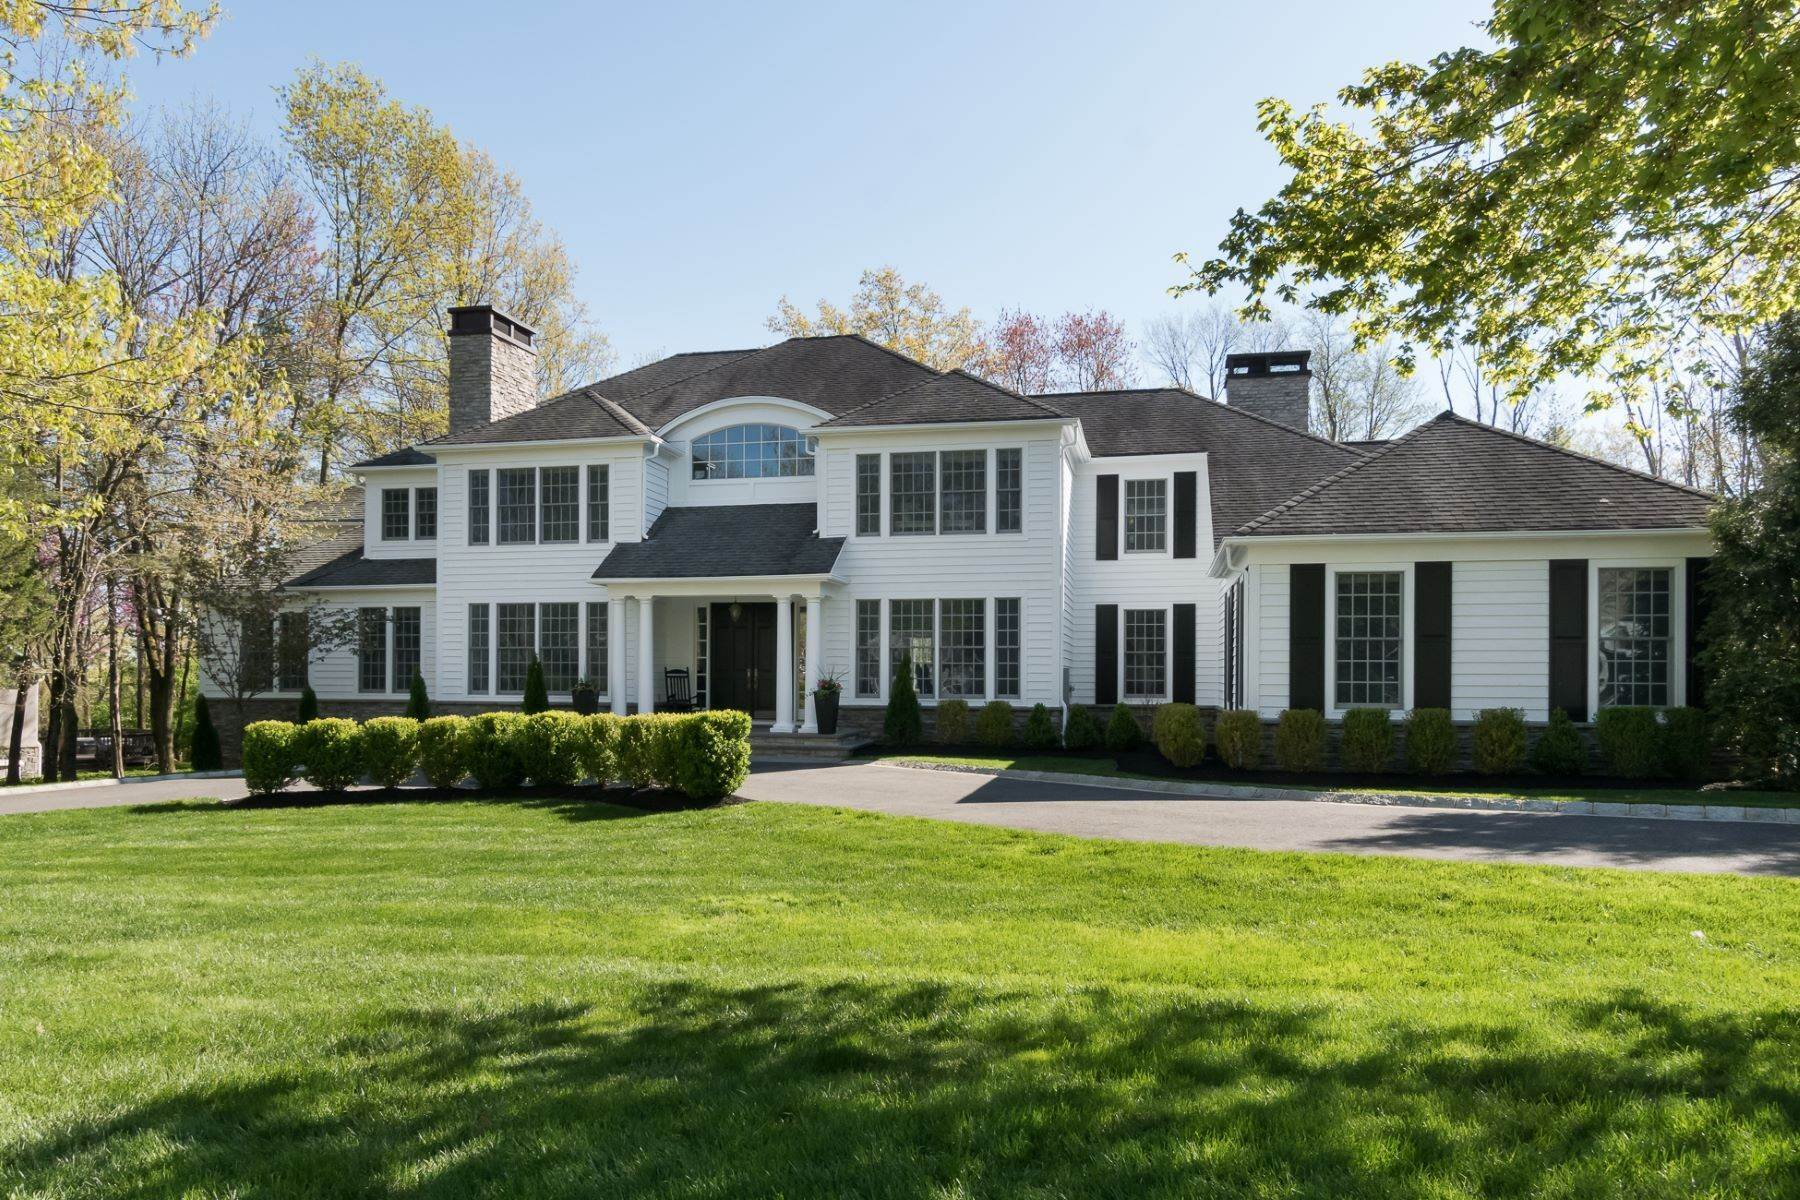 Single Family Homes for Sale at Expansive Interior Opens to Enviable Outdoor Space 19 Derwent Drive, Princeton, New Jersey 08540 United States